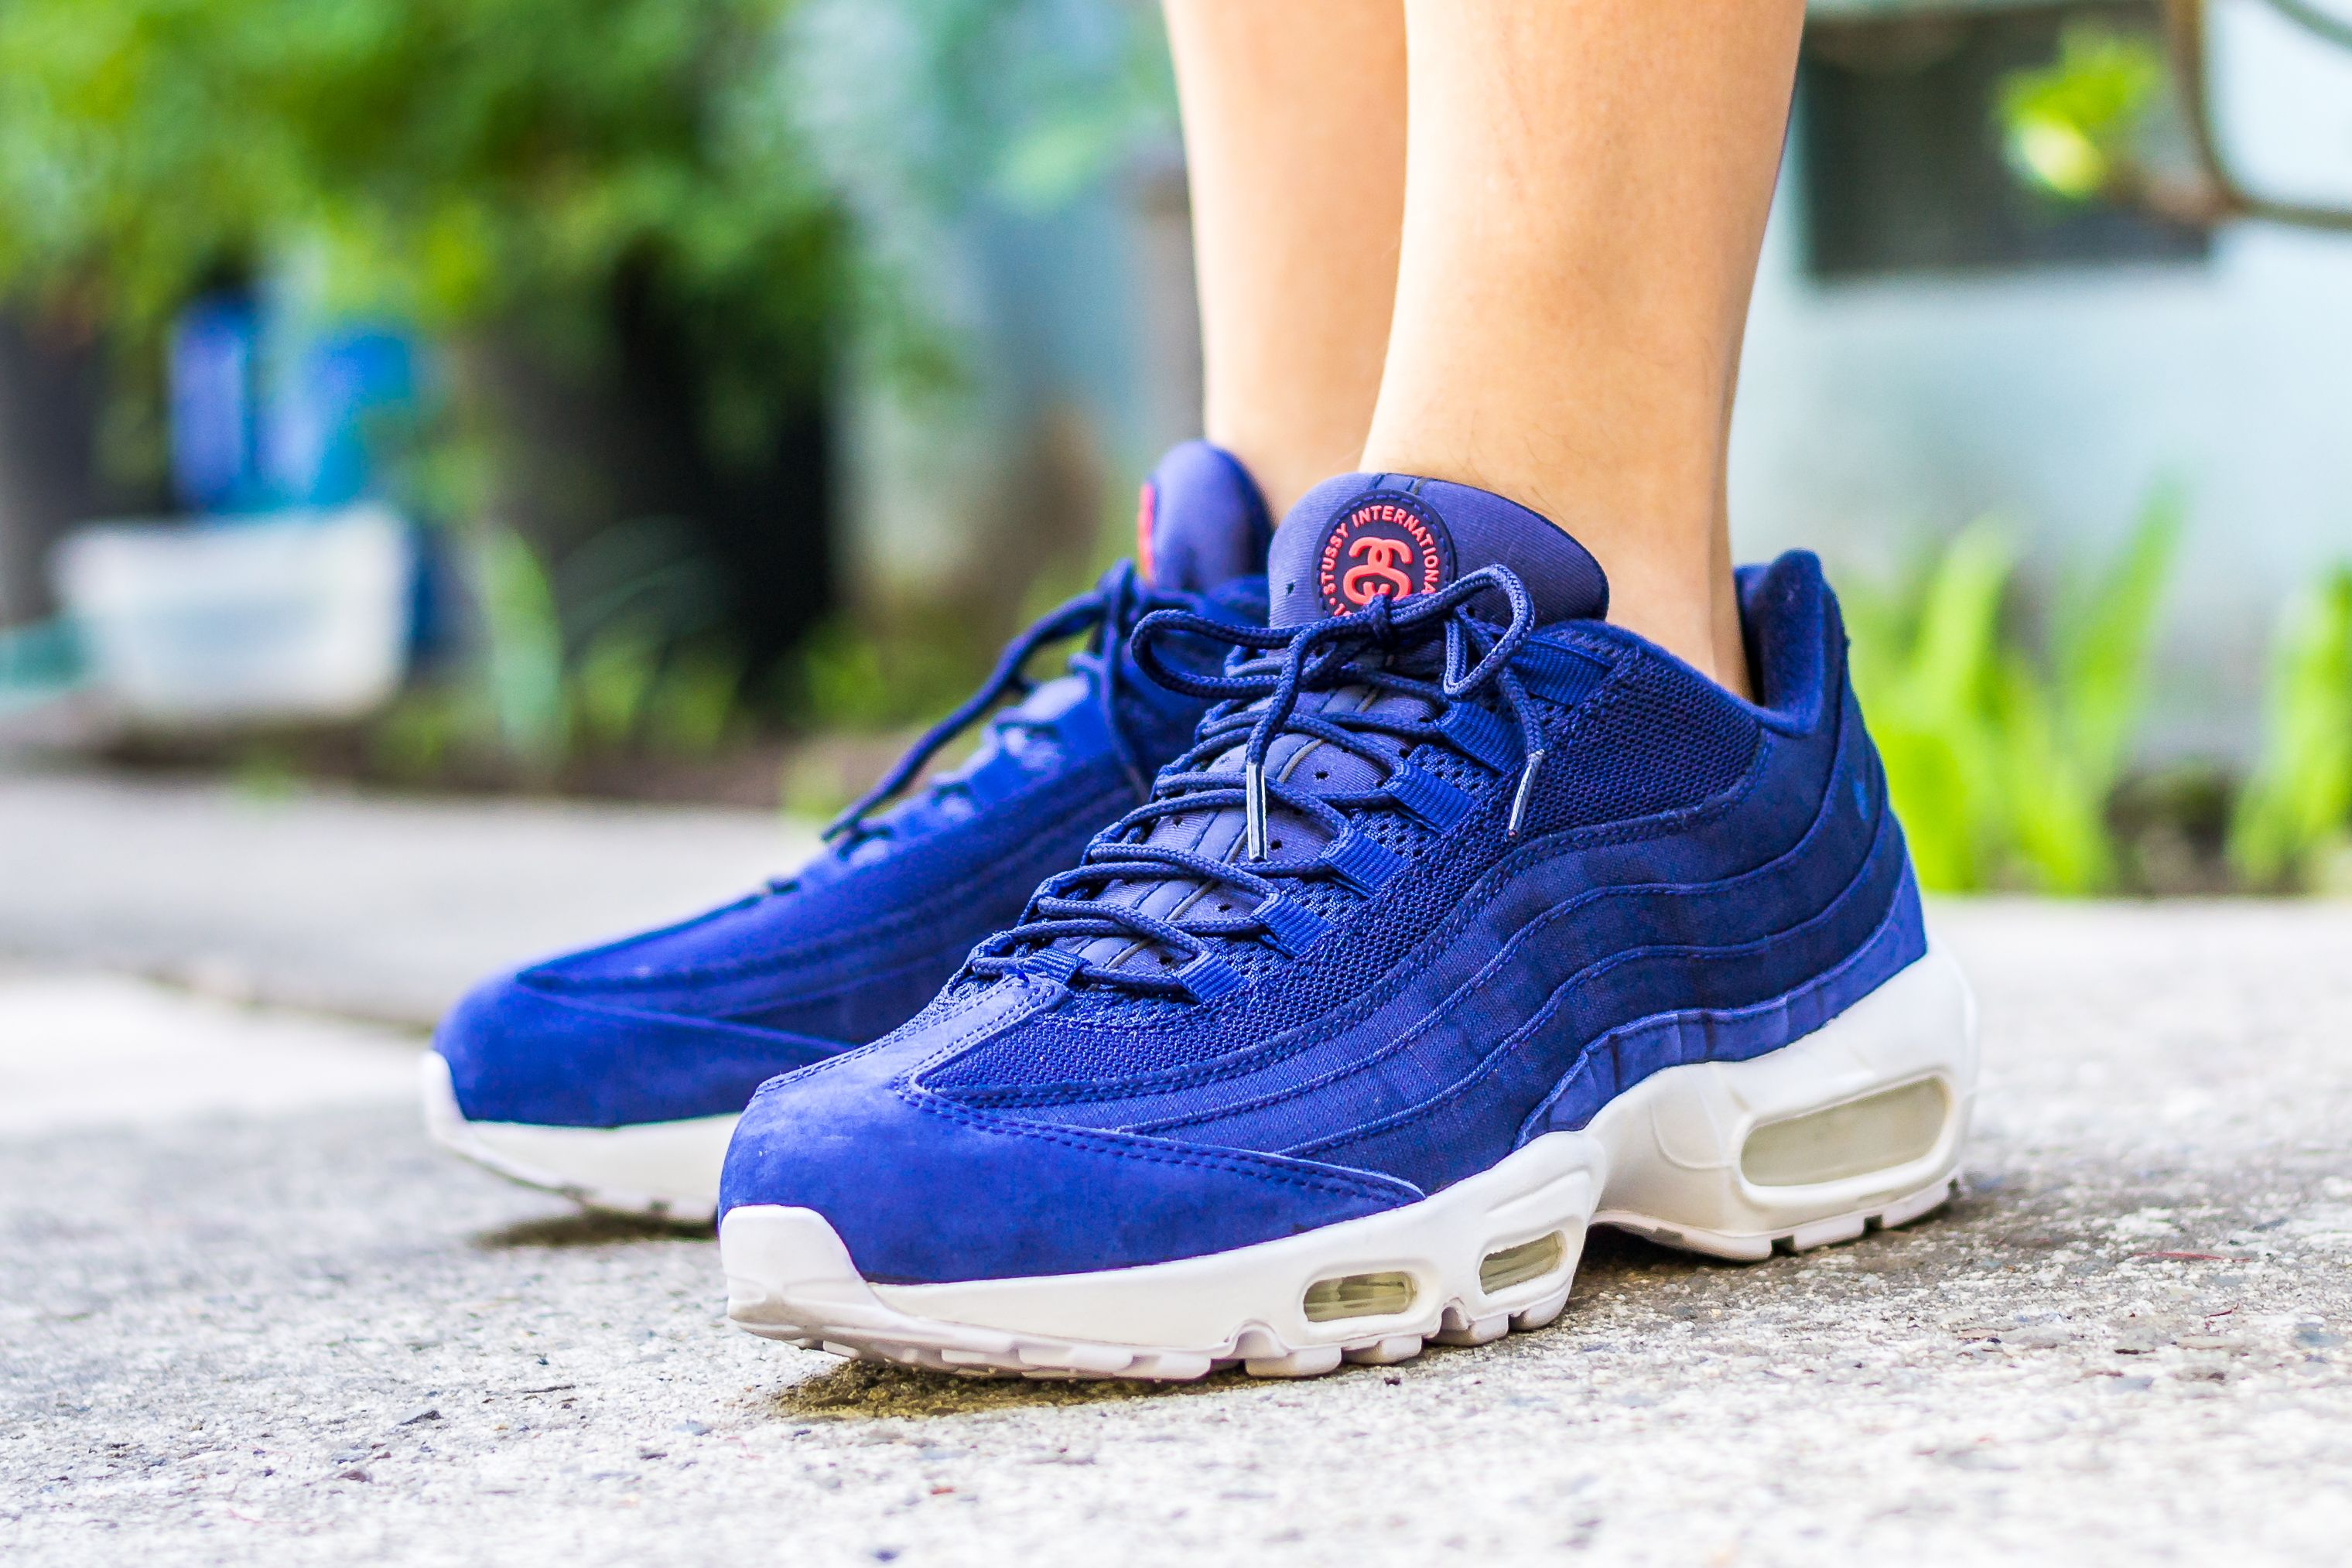 Nike Air Max 95 Stussy Loyal Blue On Feet | ?SneakerS oF